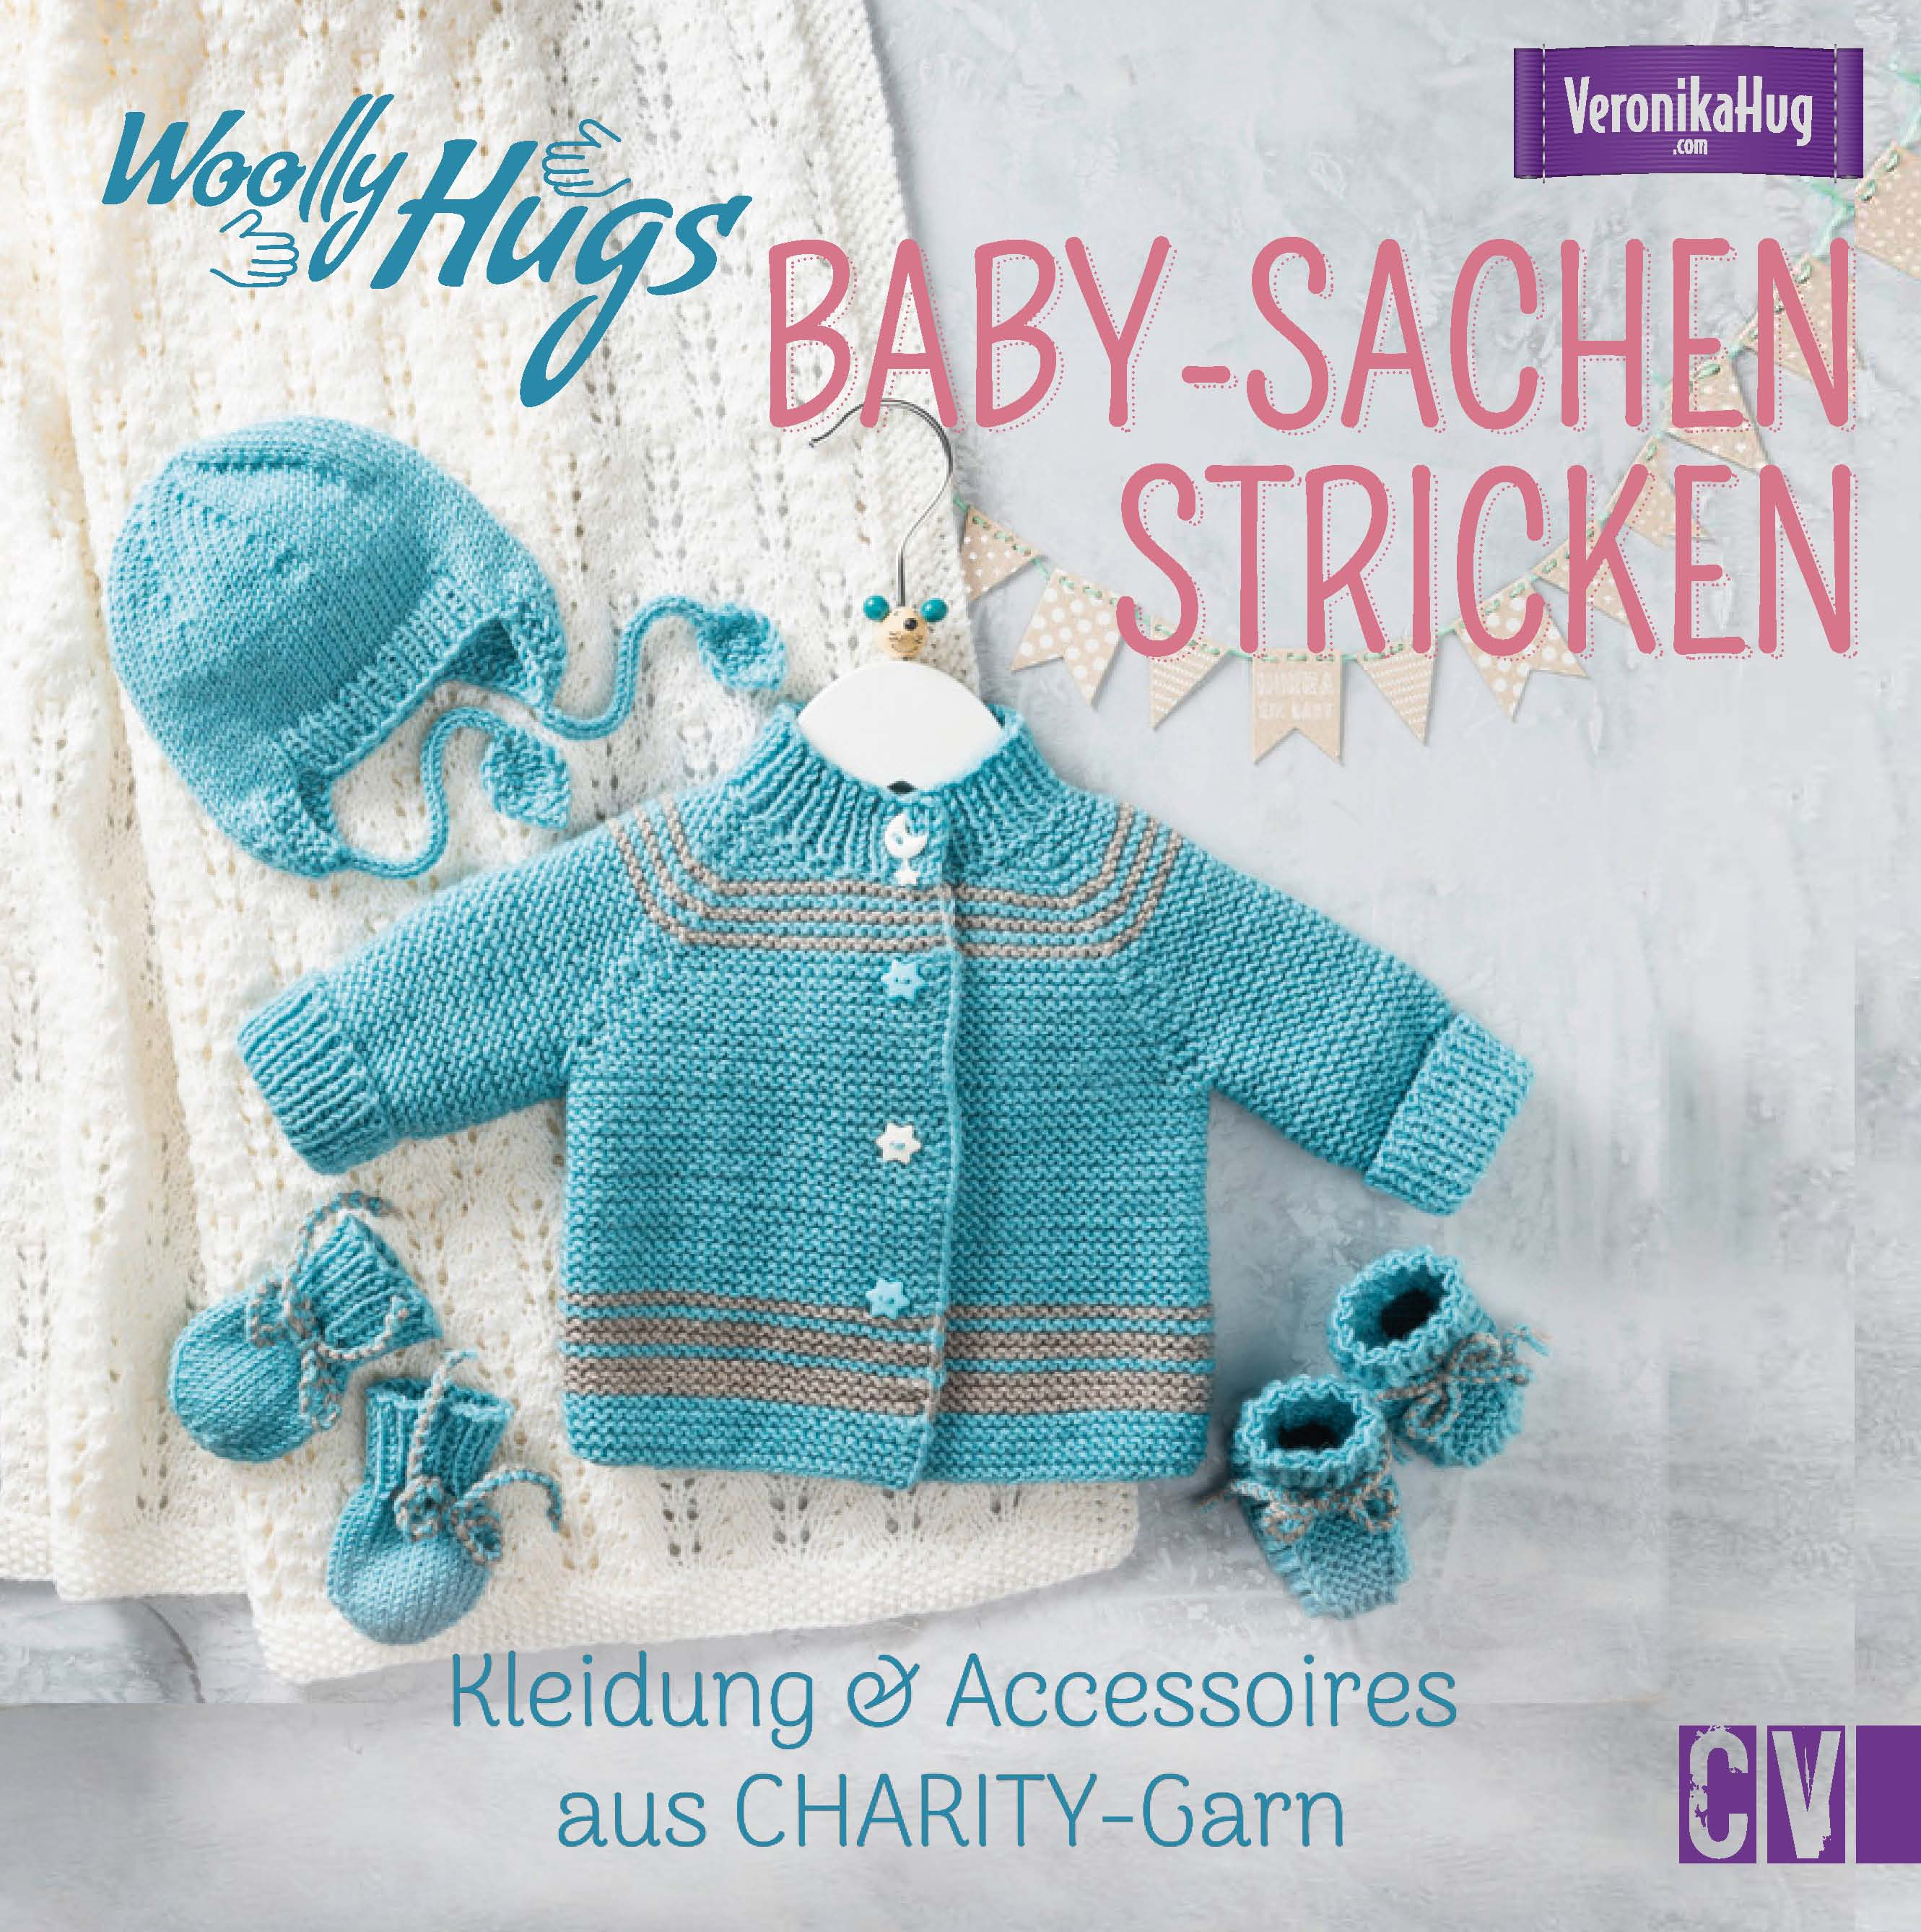 CV 6557 Wolly Hugs Baby-Sachen stricken